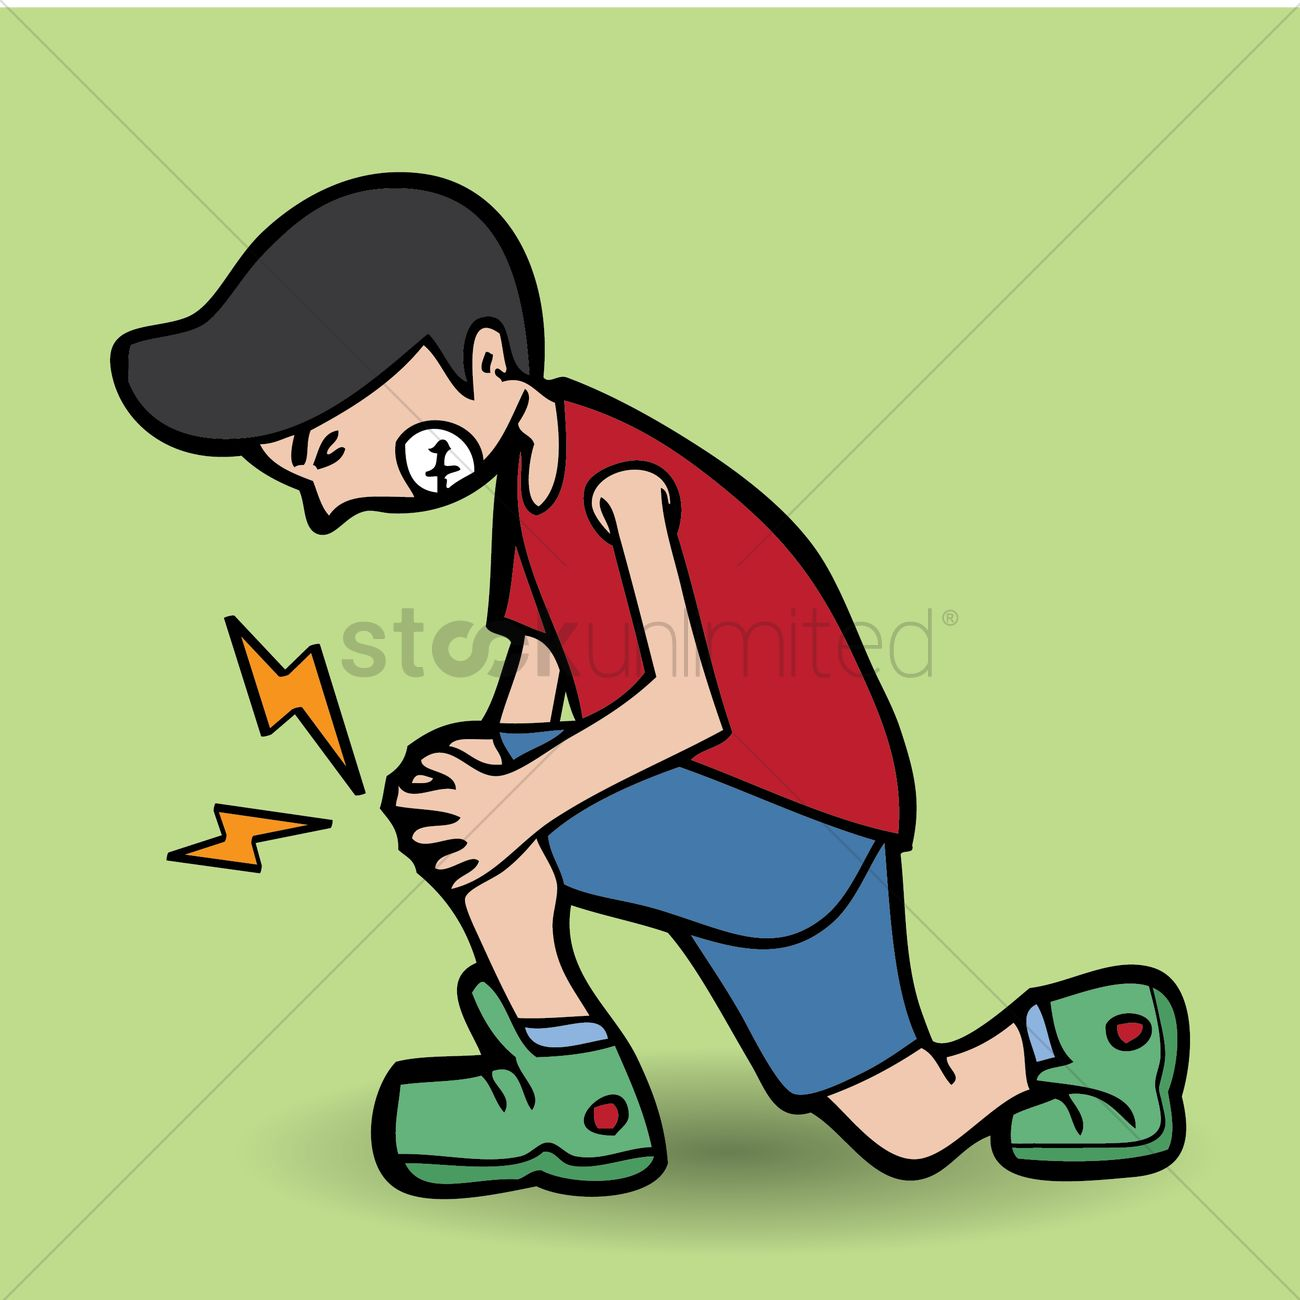 Young boy with knee pain Vector Image.